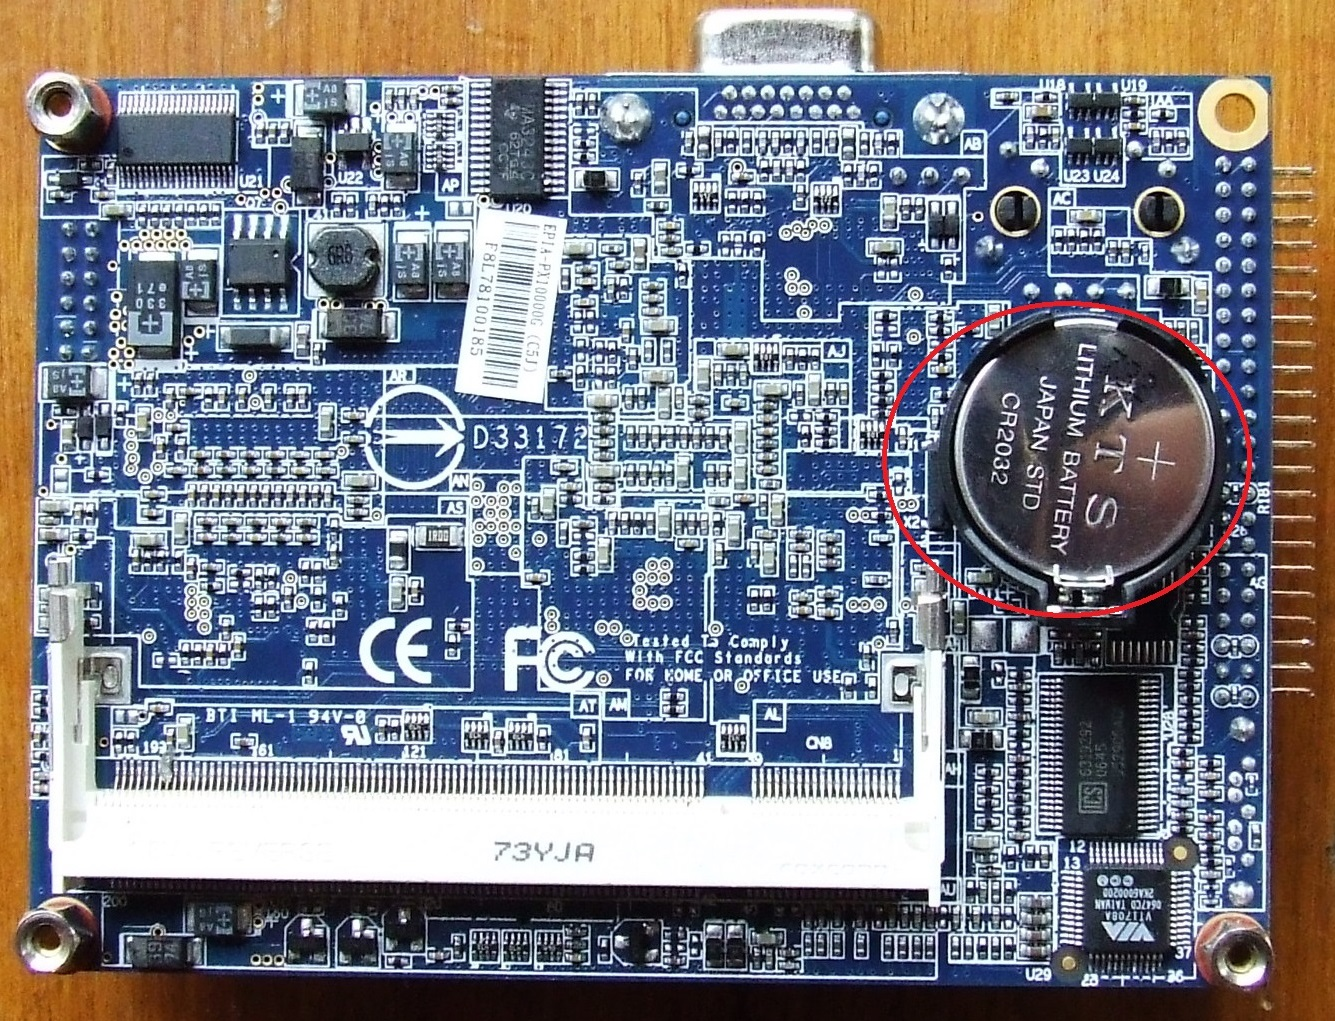 Motherboard Failure Diagnosis And Solutions Electronic Circuit Board With Processor Repair Boards Stock Cmos Battery